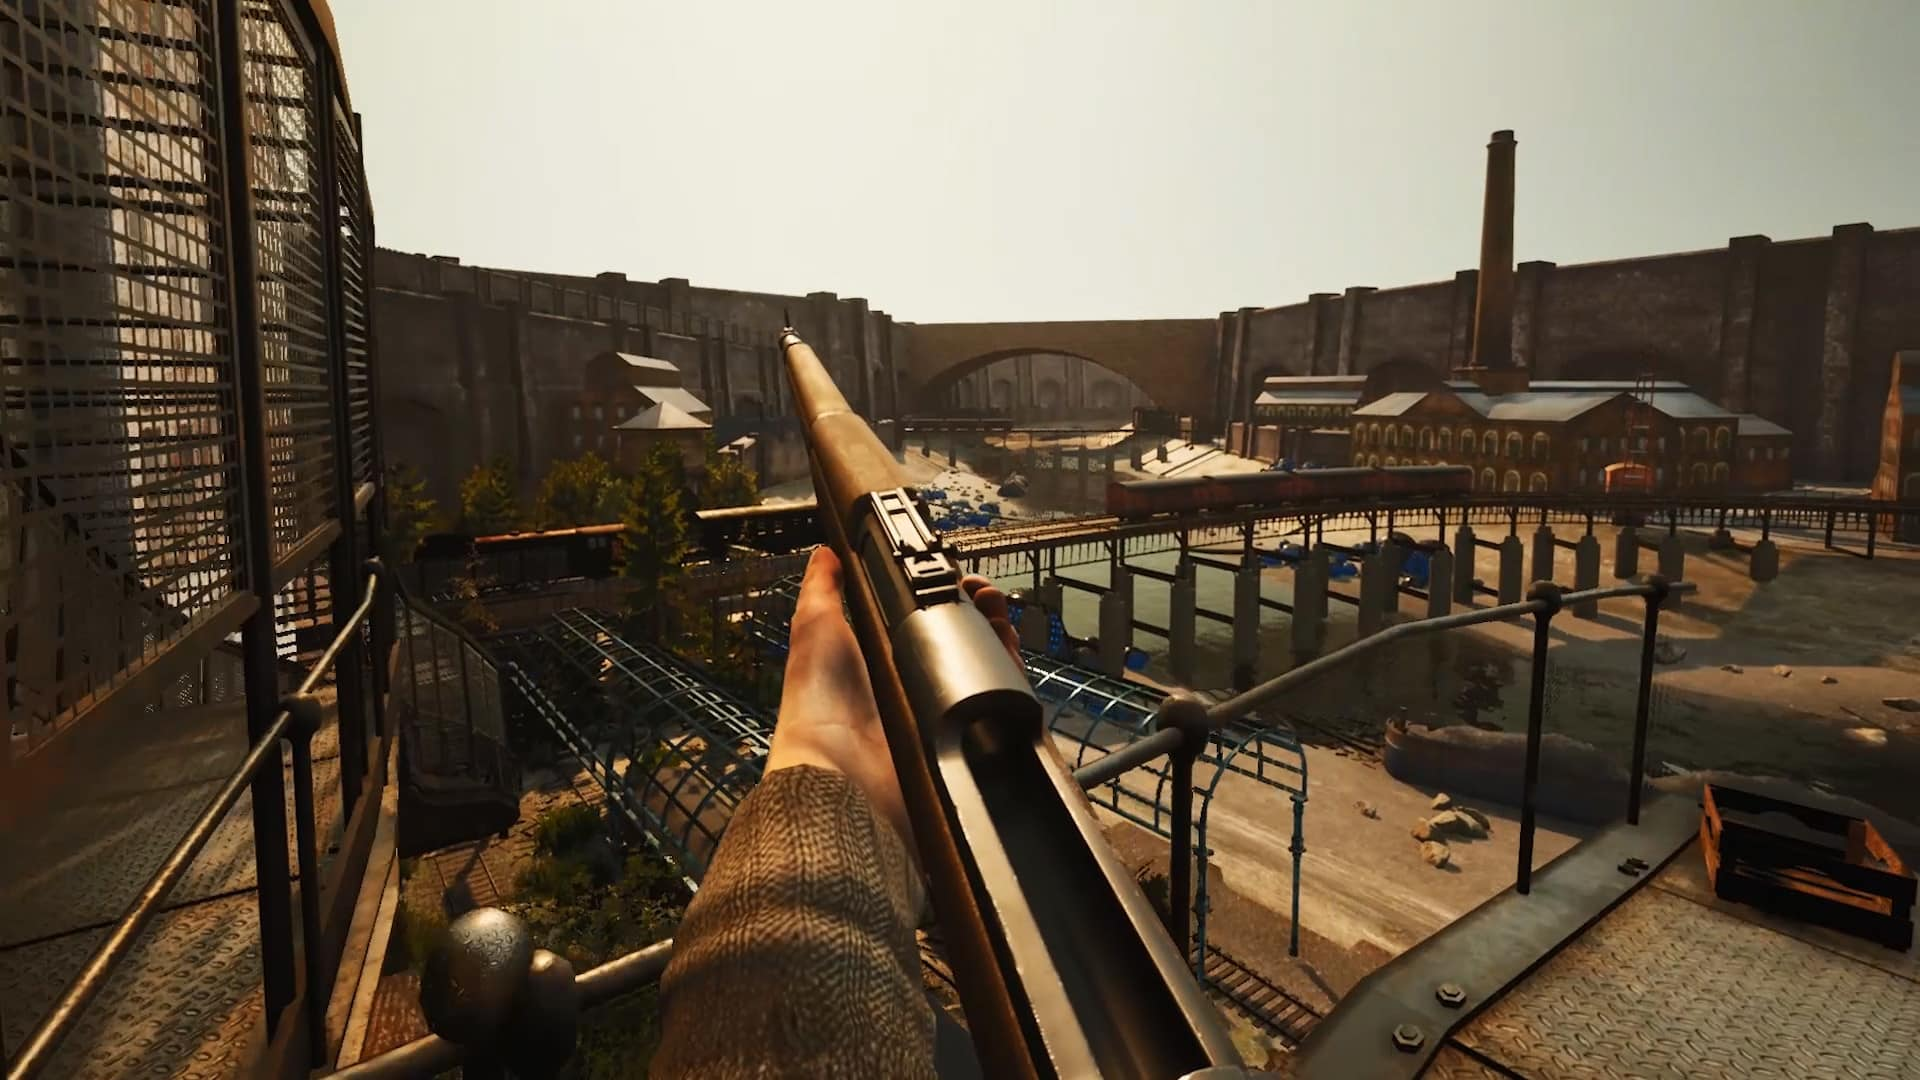 Industria preview demo Bleakmill Headup Games first-person shooter FPS BioShock Penumbra